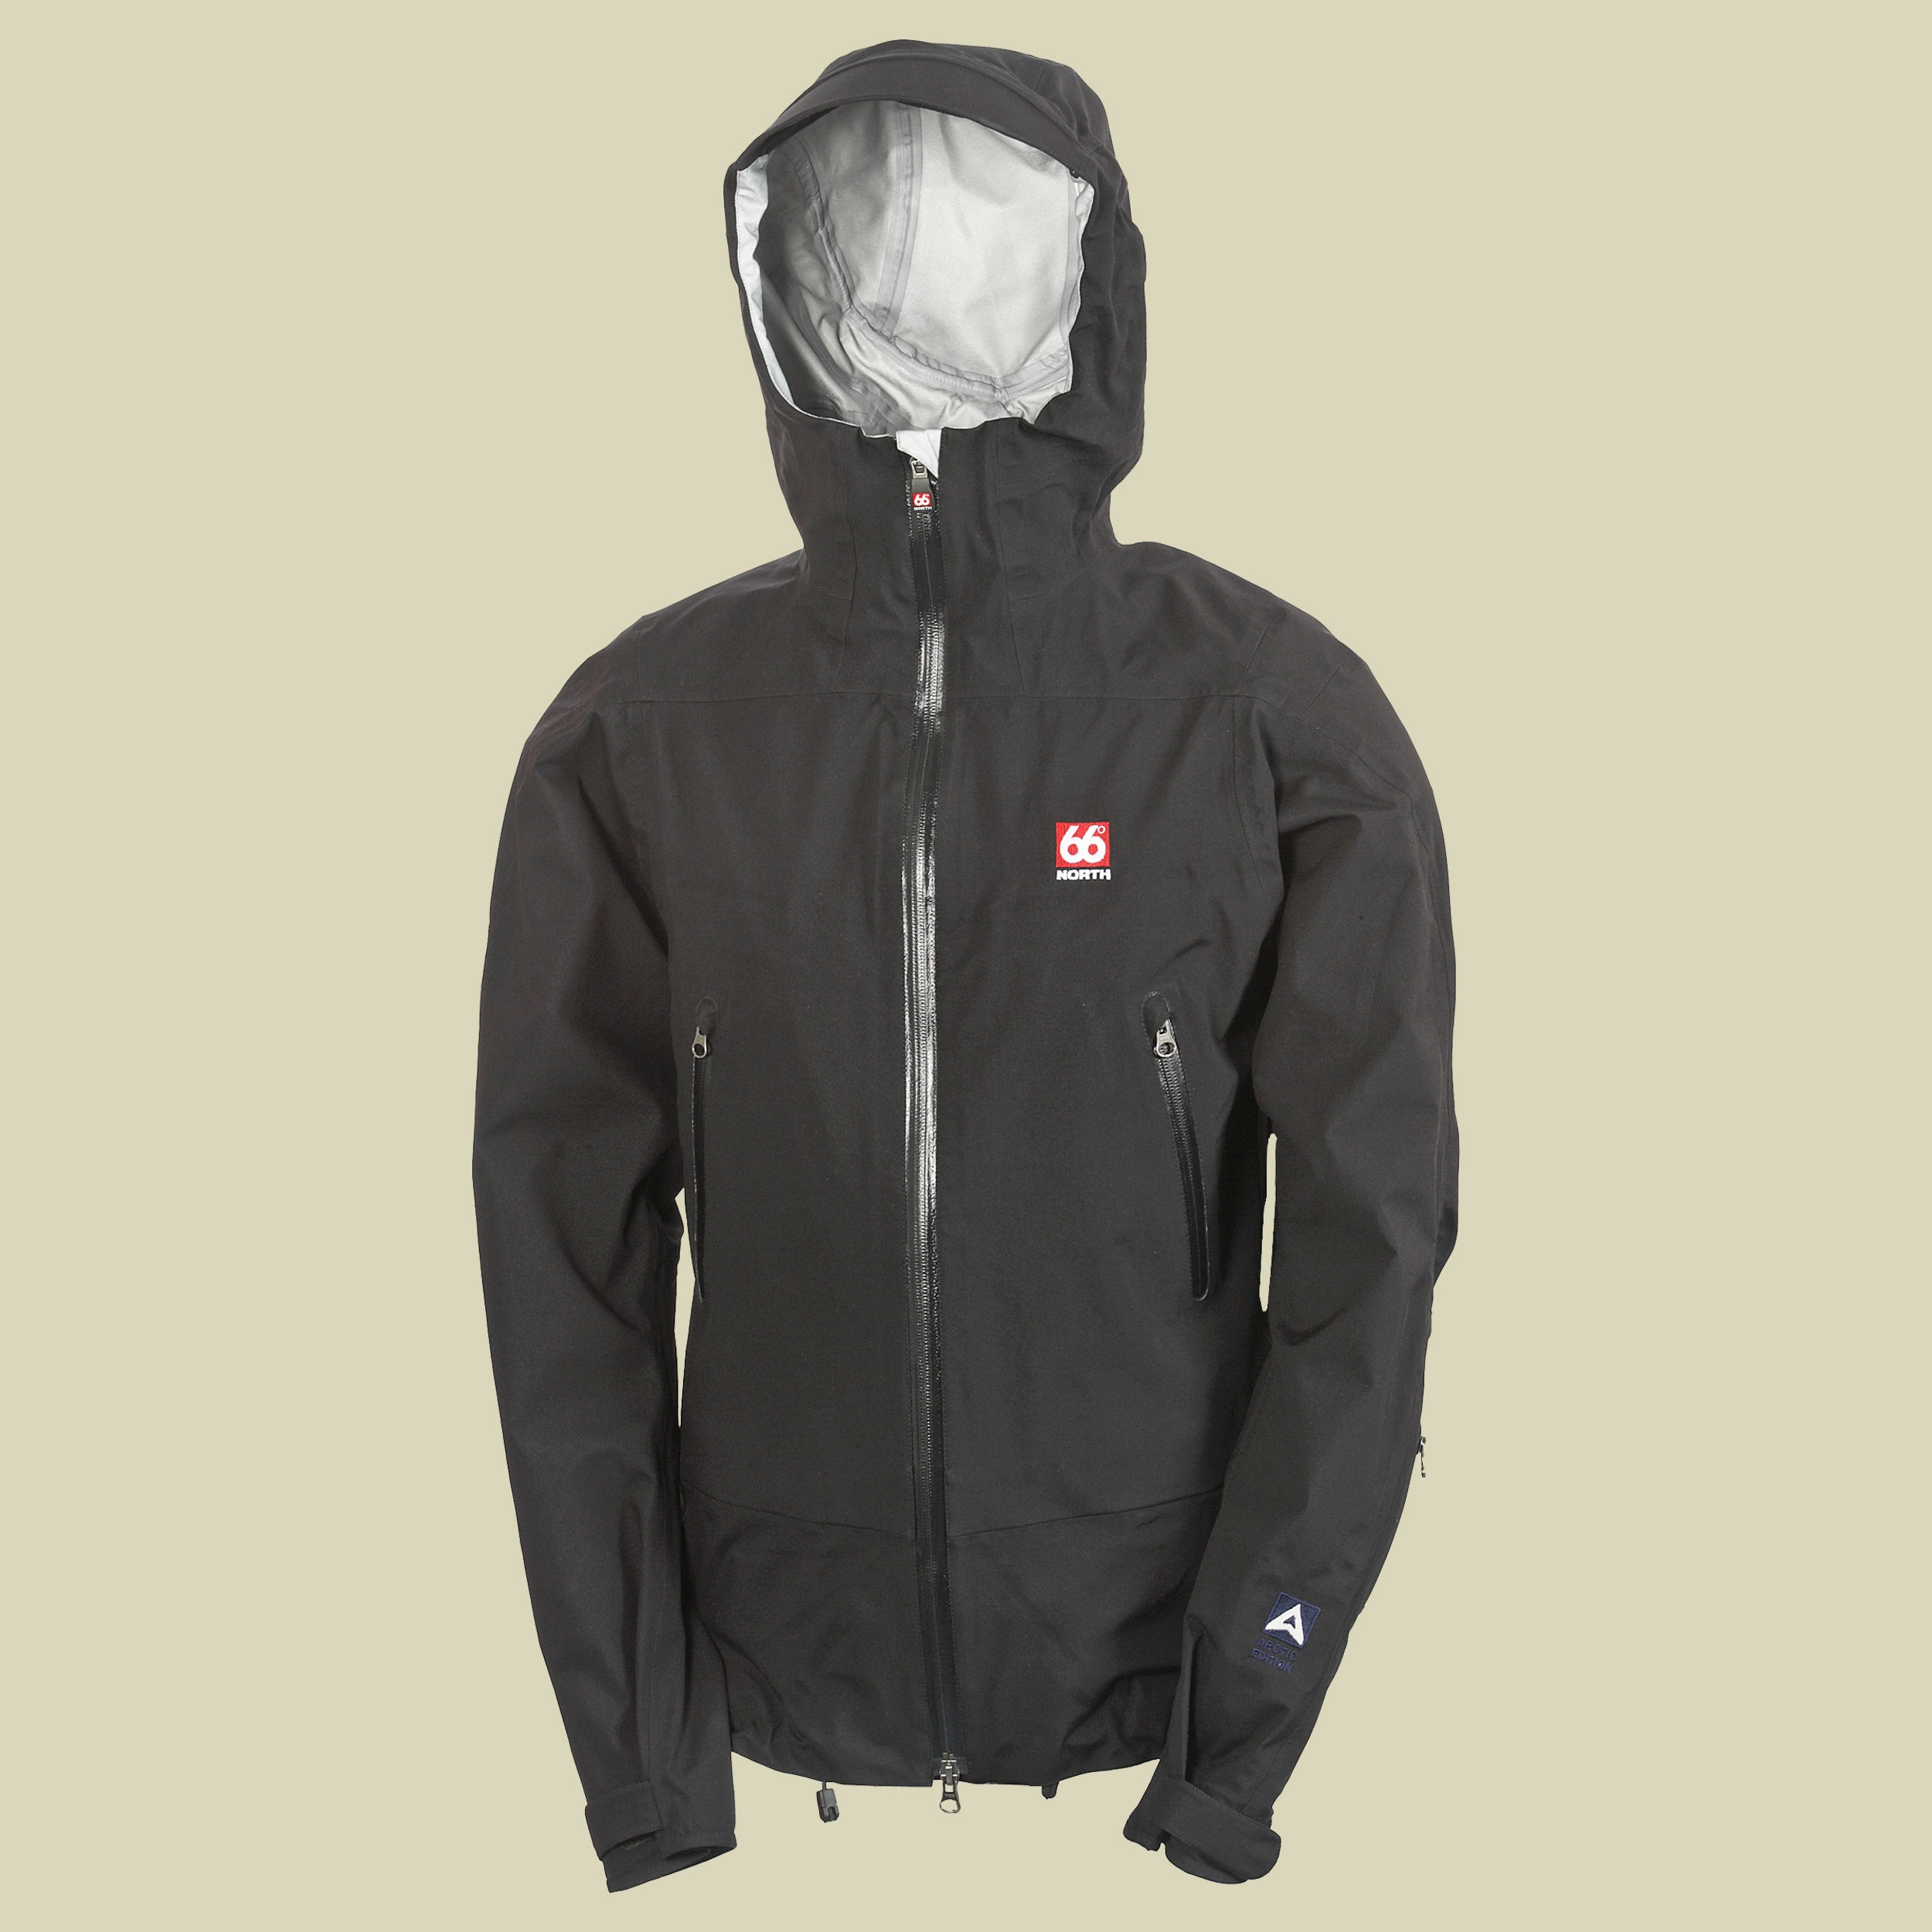 Snaefell Jacket